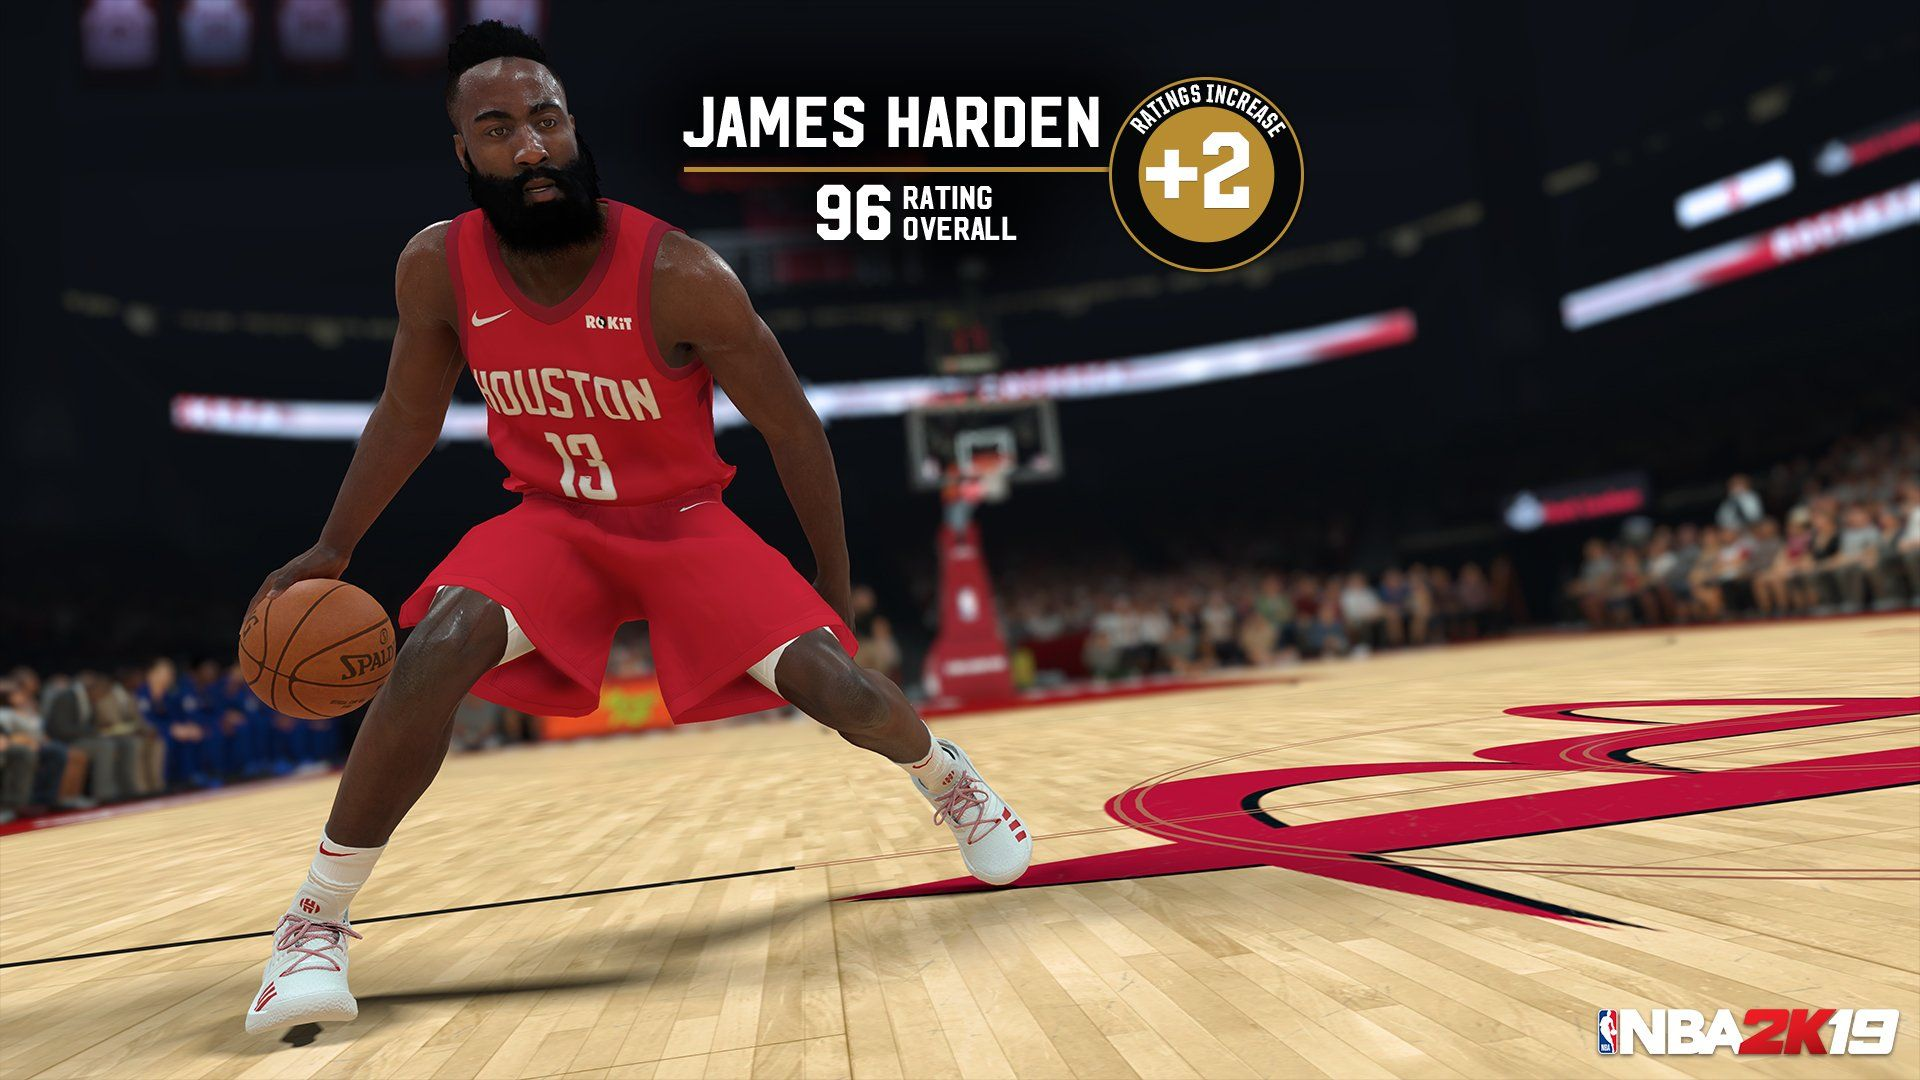 16c19464e49 Nba 2k19 Roster Update Tweaks Player Ratings For January Patch Notes